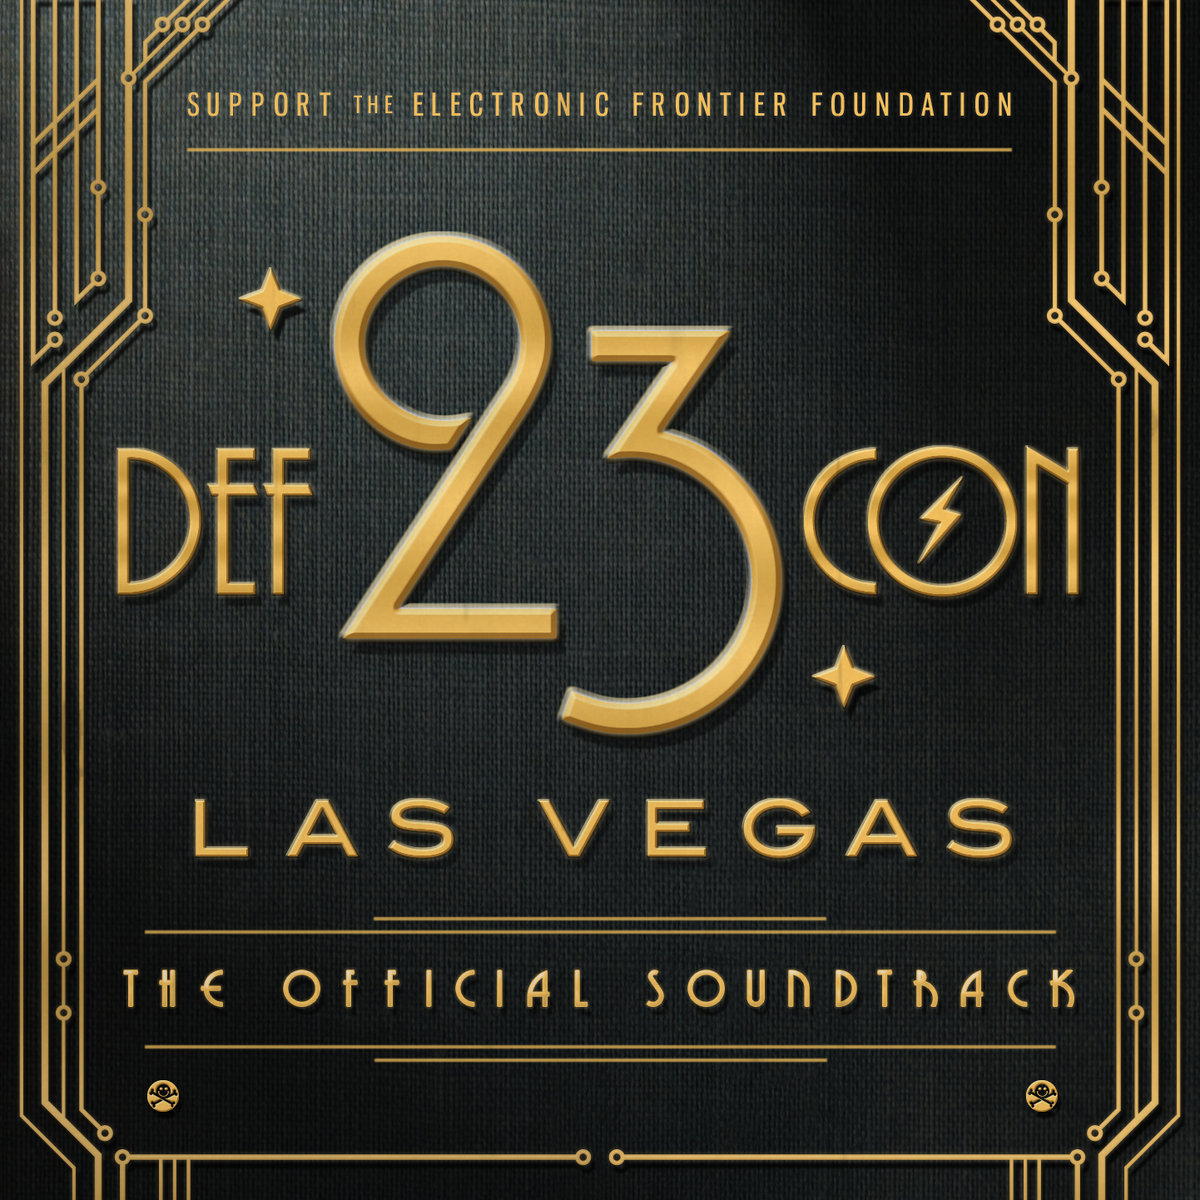 AMB - 333 266 @ 'DEF CON 23: The Official Soundtrack' album (bass, charity)